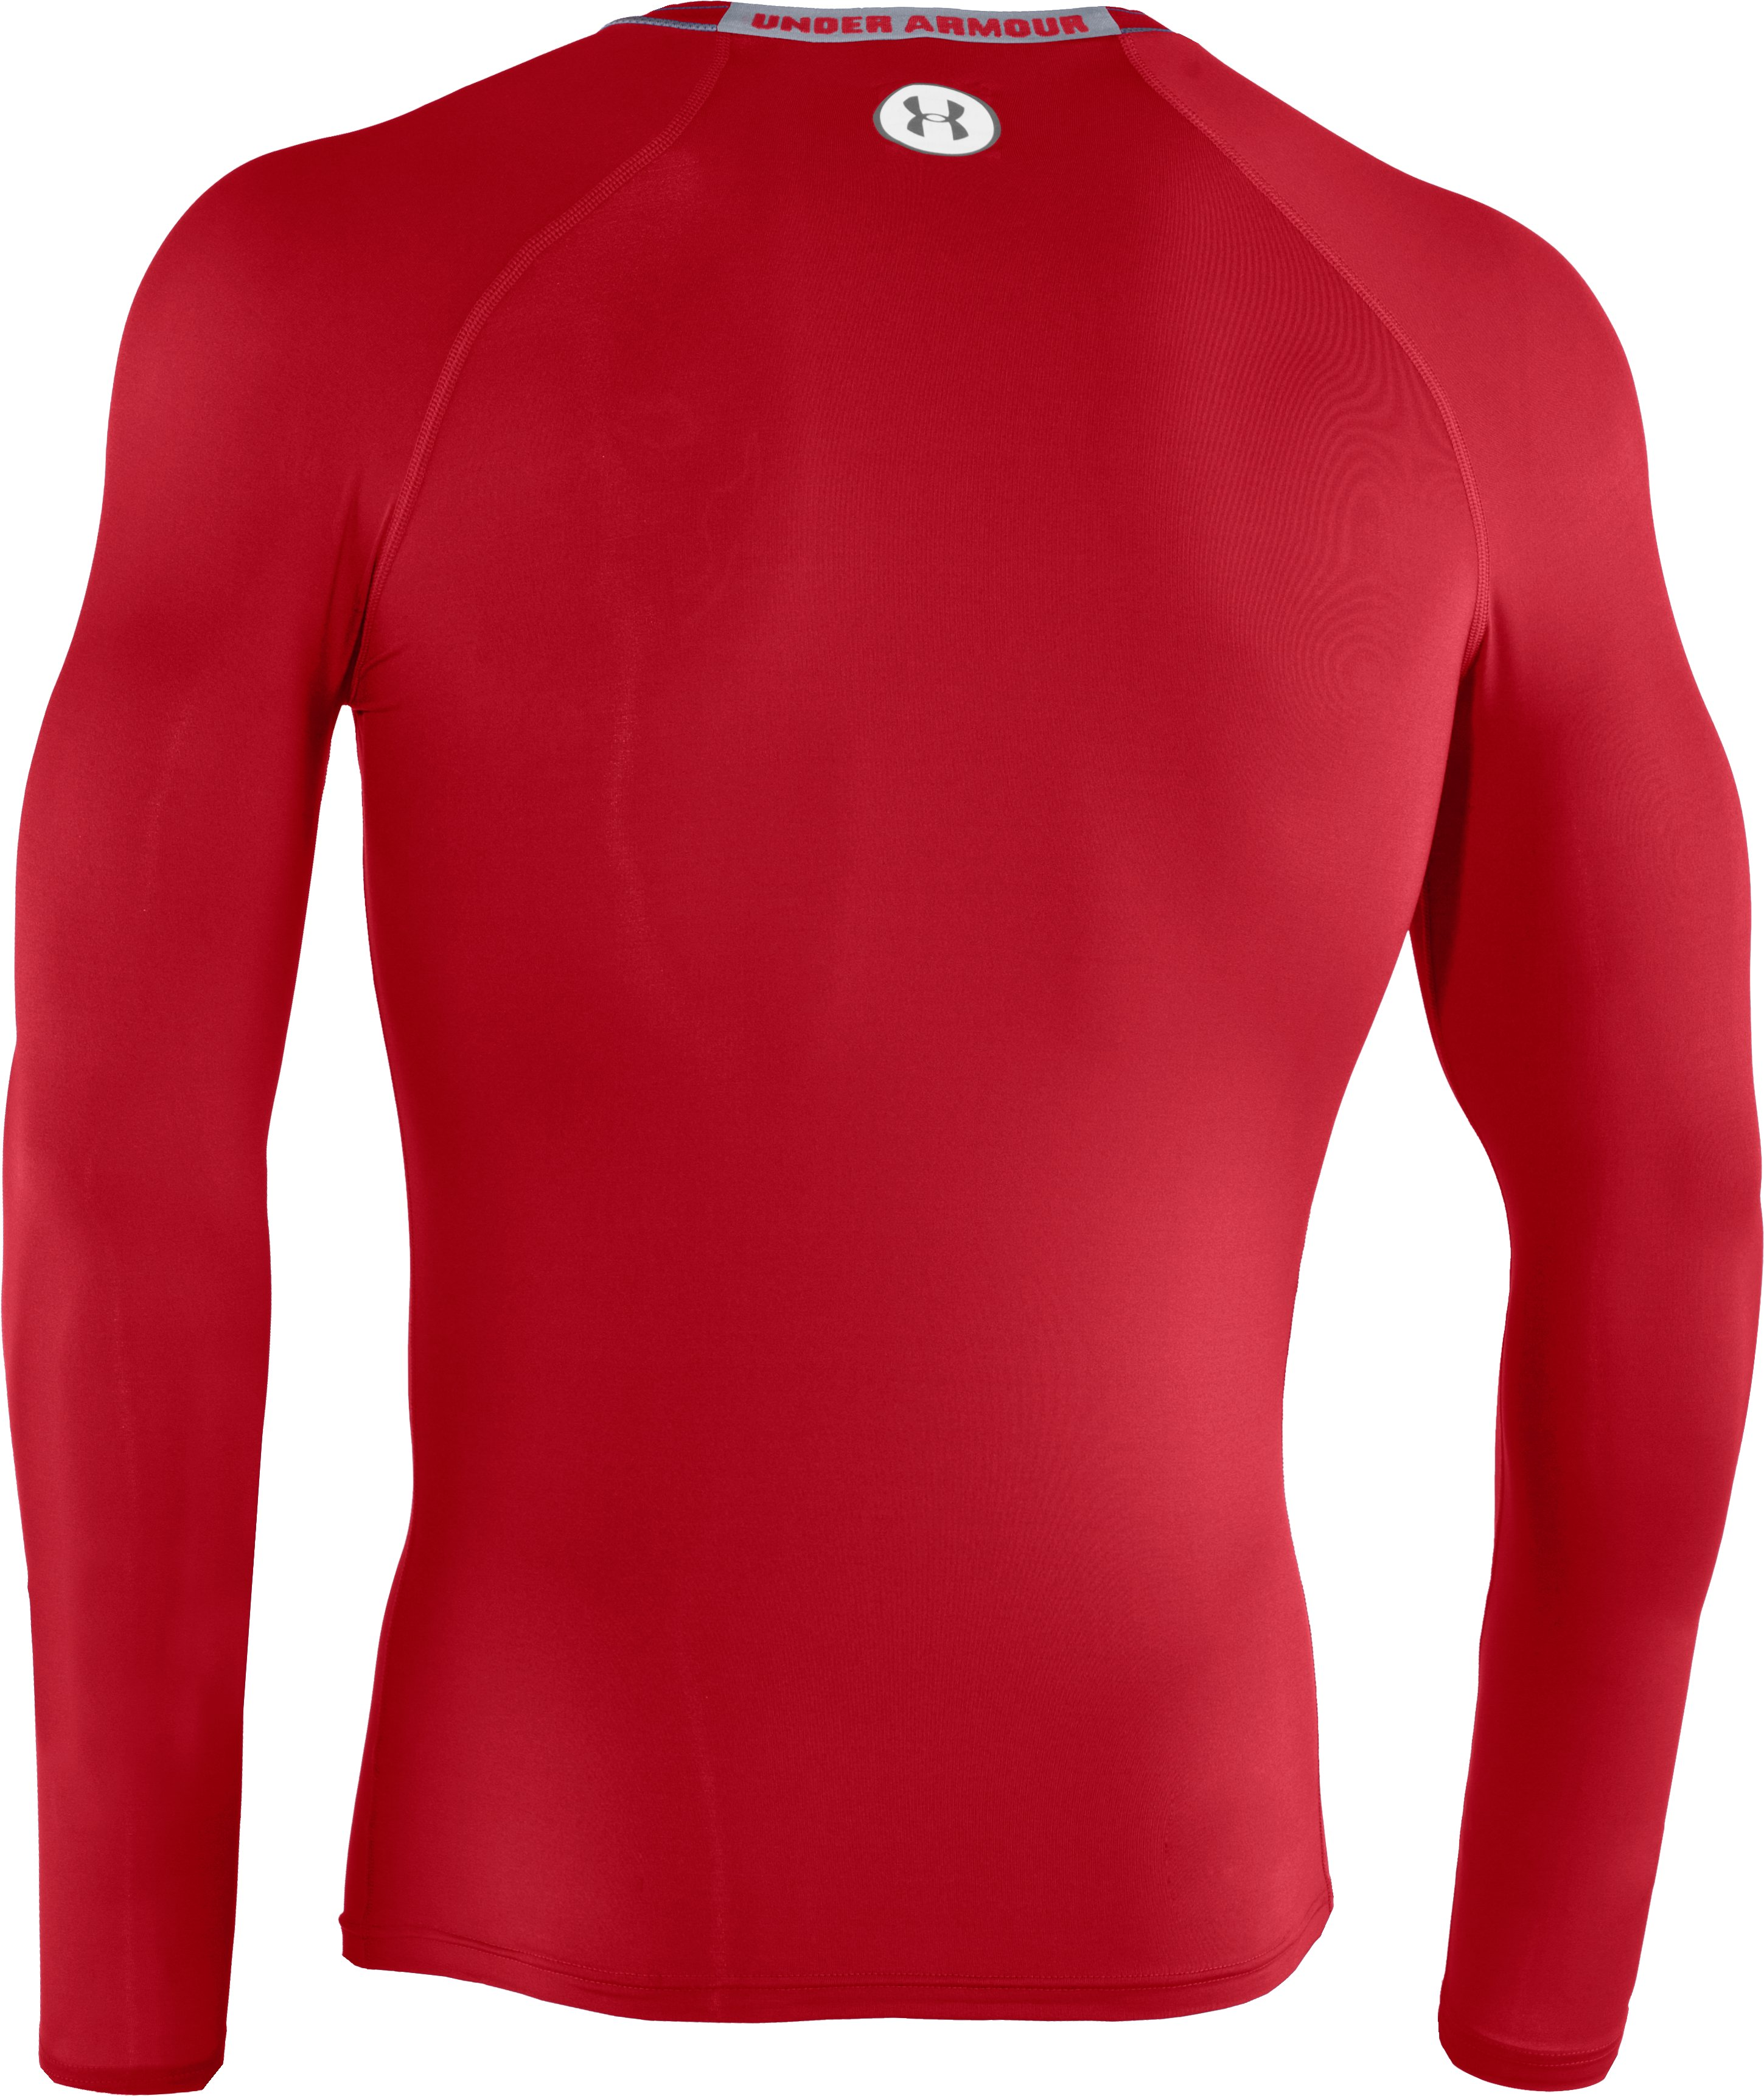 Men's HeatGear® Sonic Compression Long Sleeve, Red,